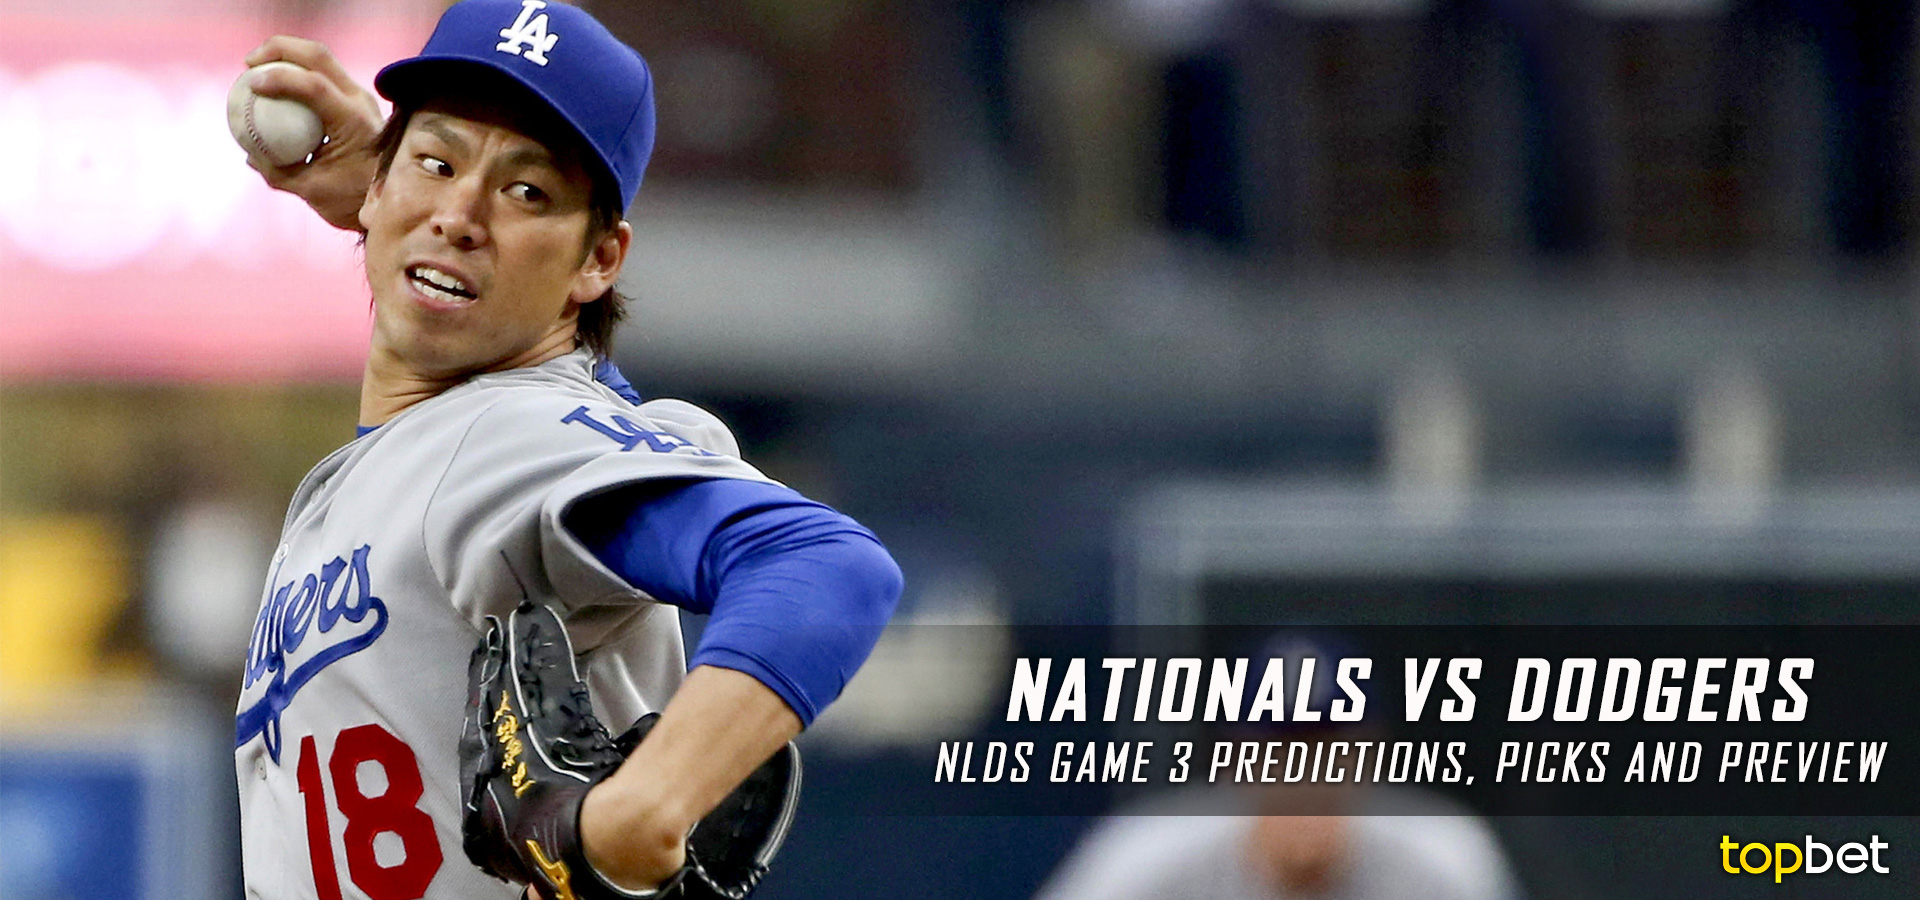 Nationals vs Dodgers 2016 NLDS Game 3 Predictions & Preview